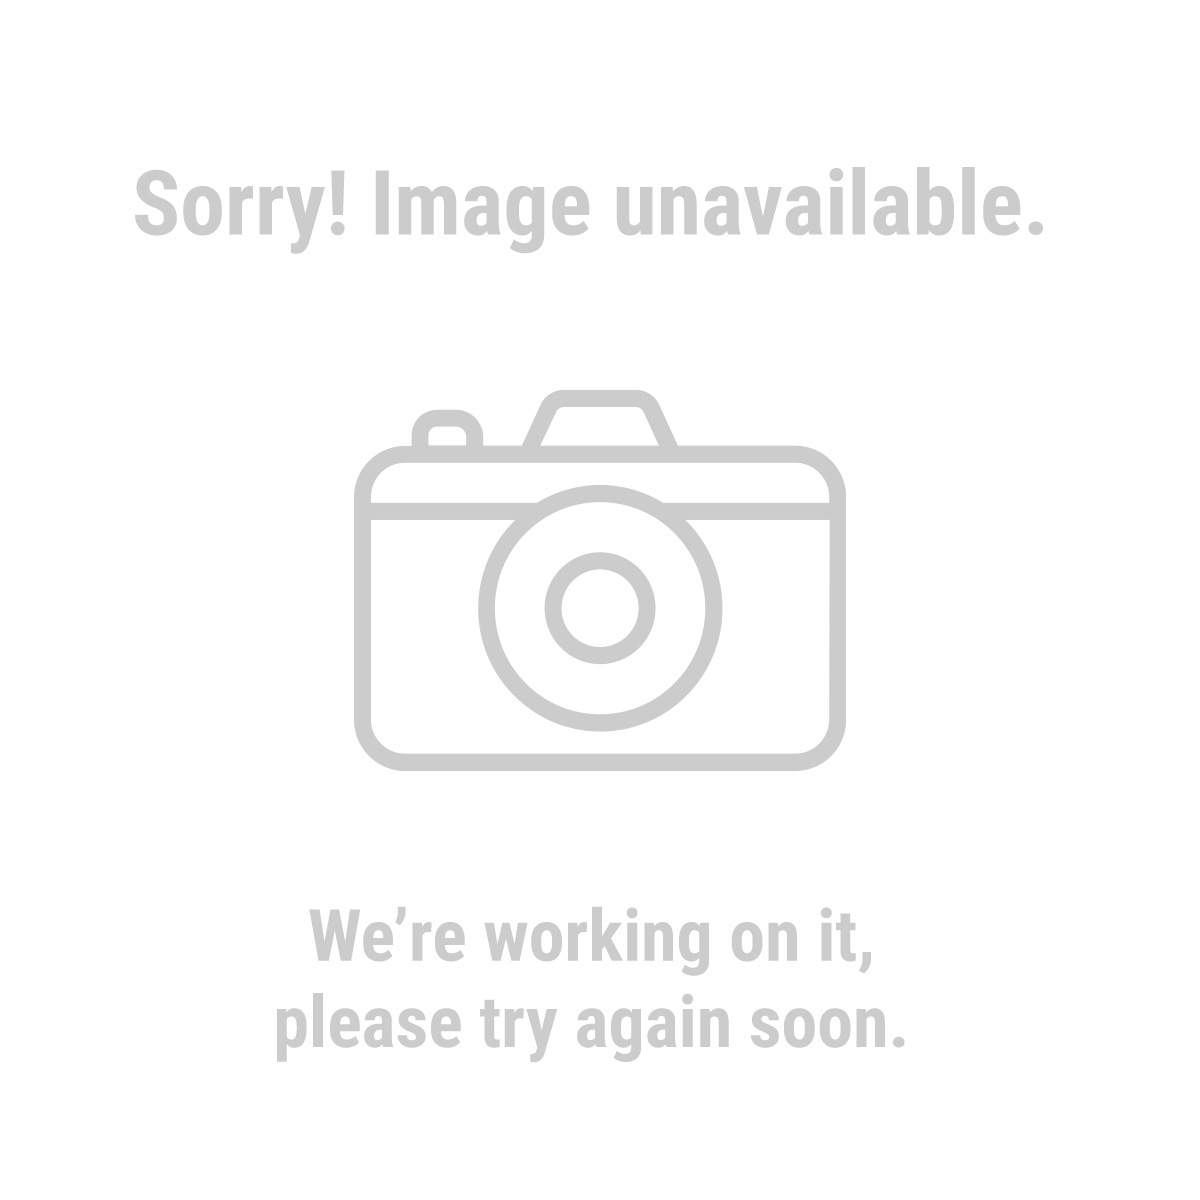 Drill Master 61722 7-1/4 in. 10 Amp Circular Saw